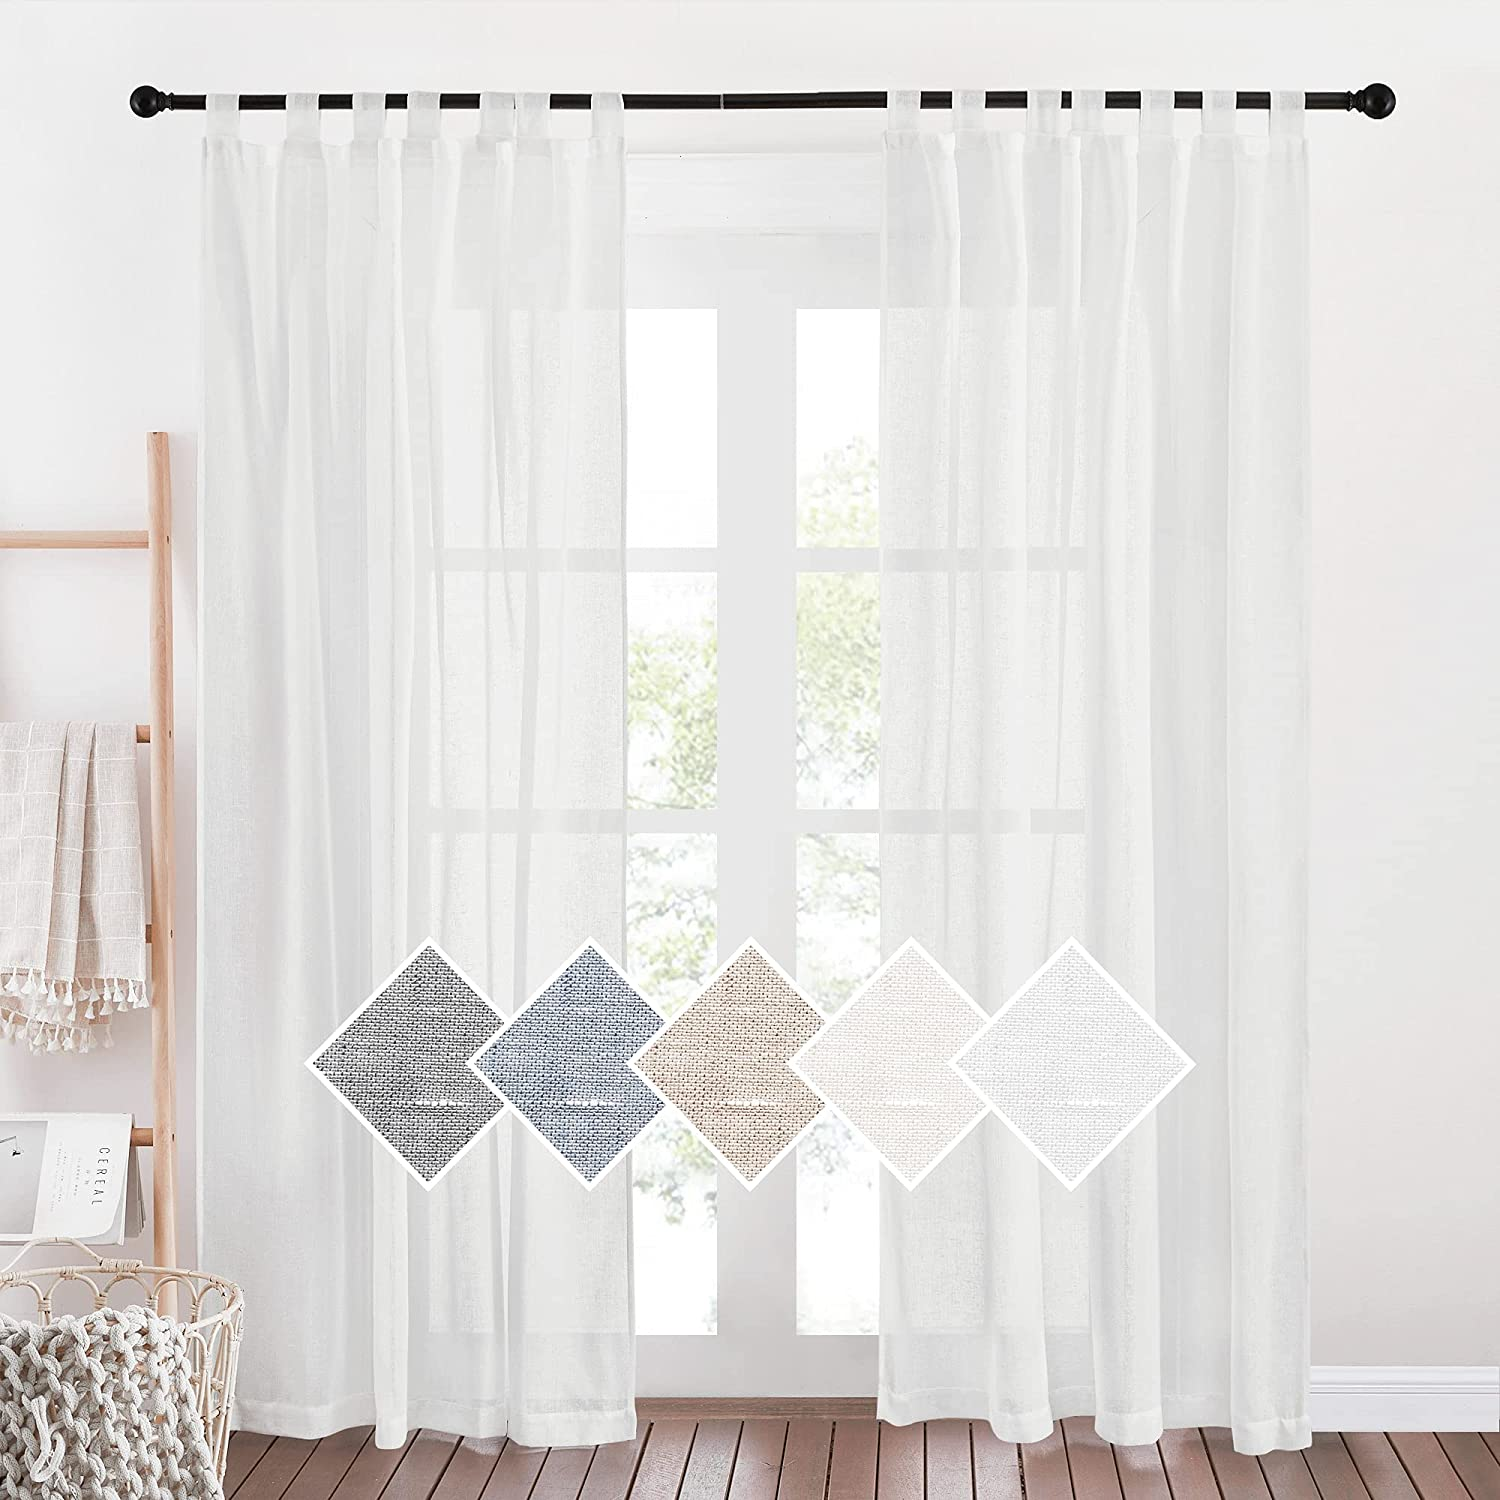 NICETOWN White Linen Max 72% OFF Curtains 84 Same day shipping inch Soft Tab Top Semi Length